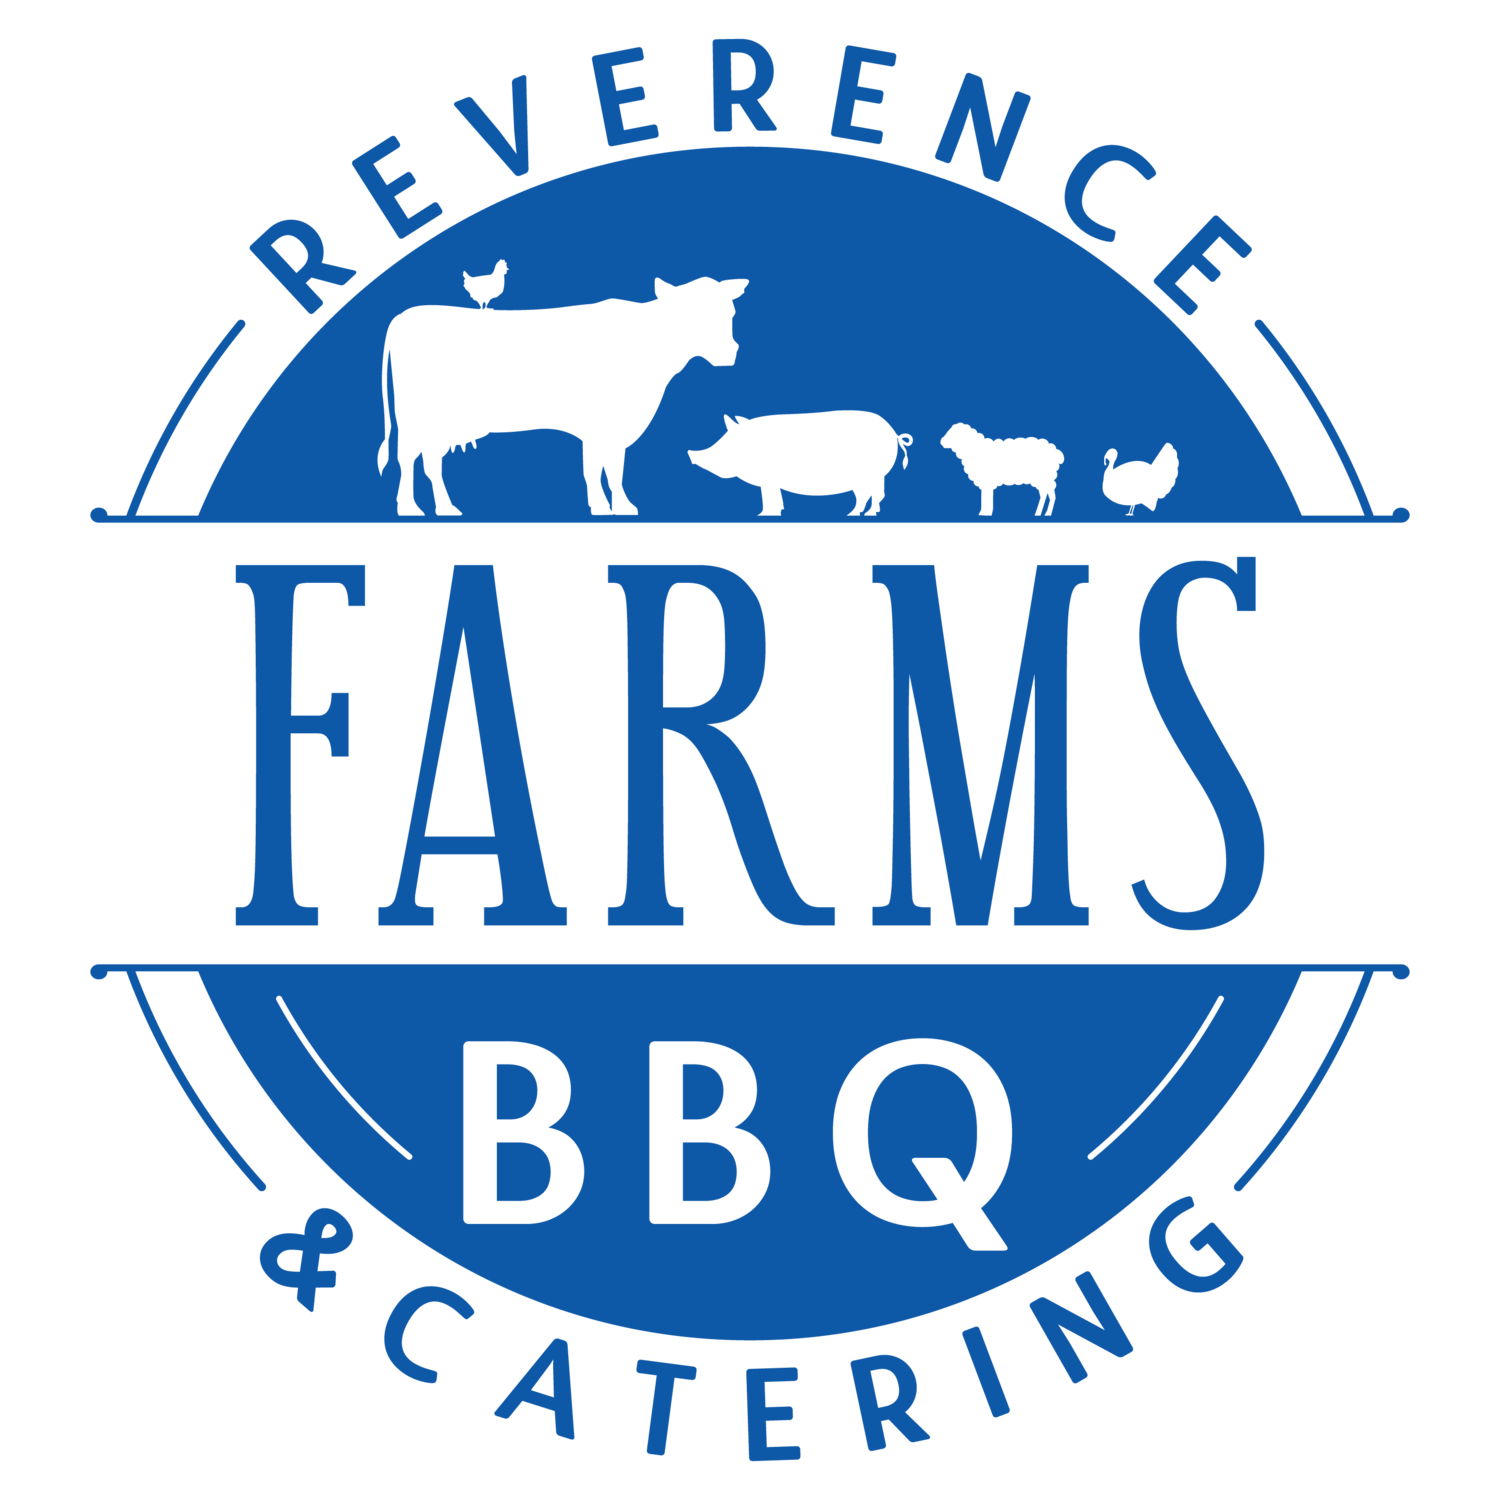 Reverence Farms BBQ & Catering